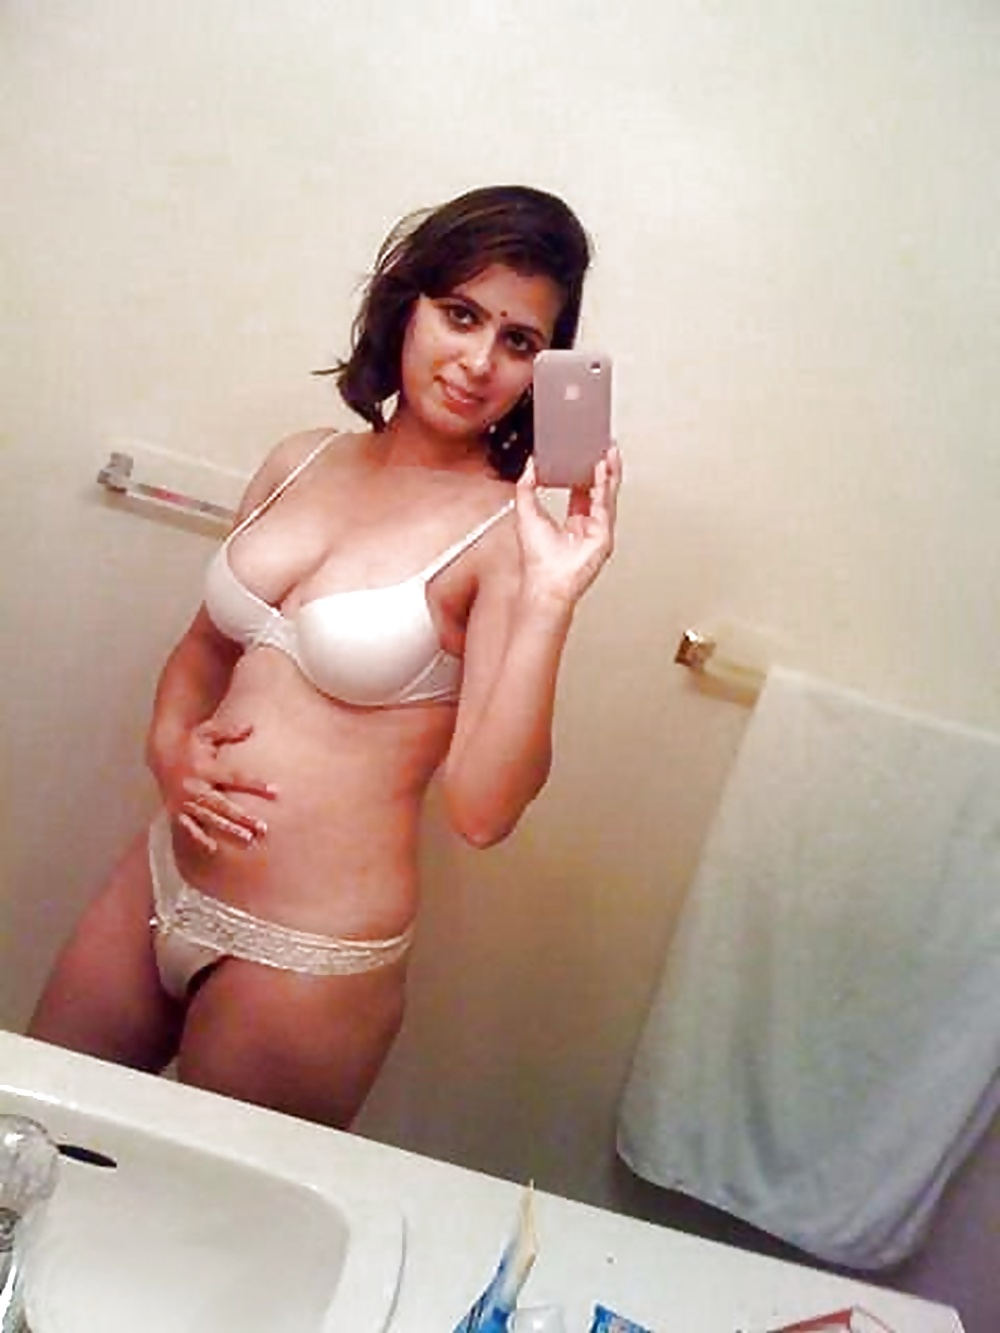 Fuck punjabi girl pussy mobile optimised photo for android iphone